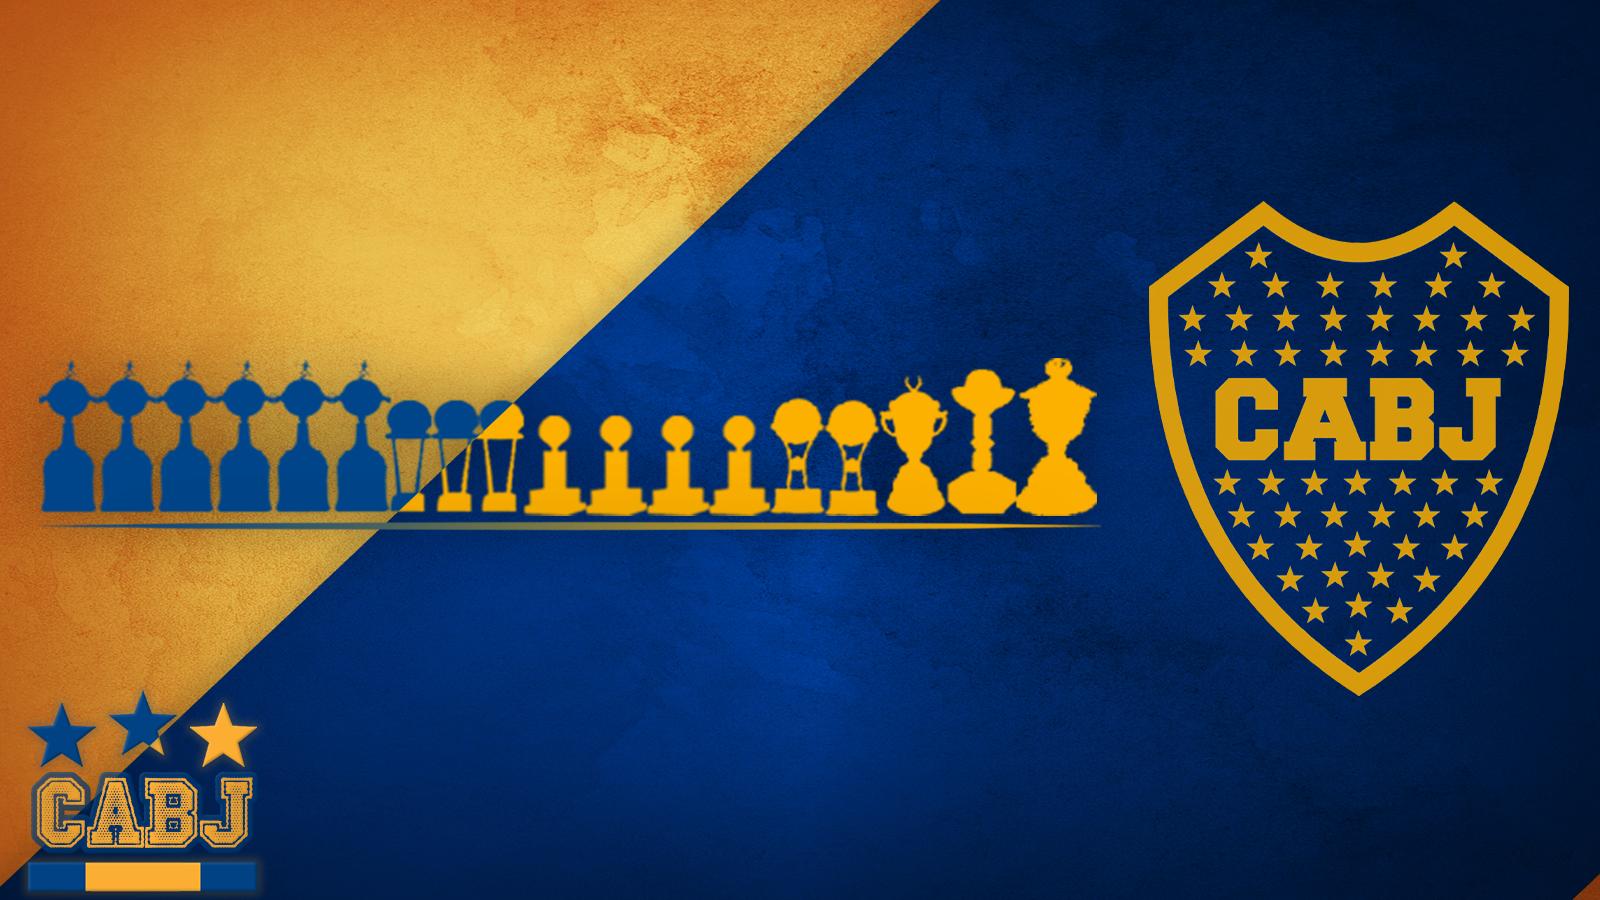 Boca Juniors: Become A World Star Player